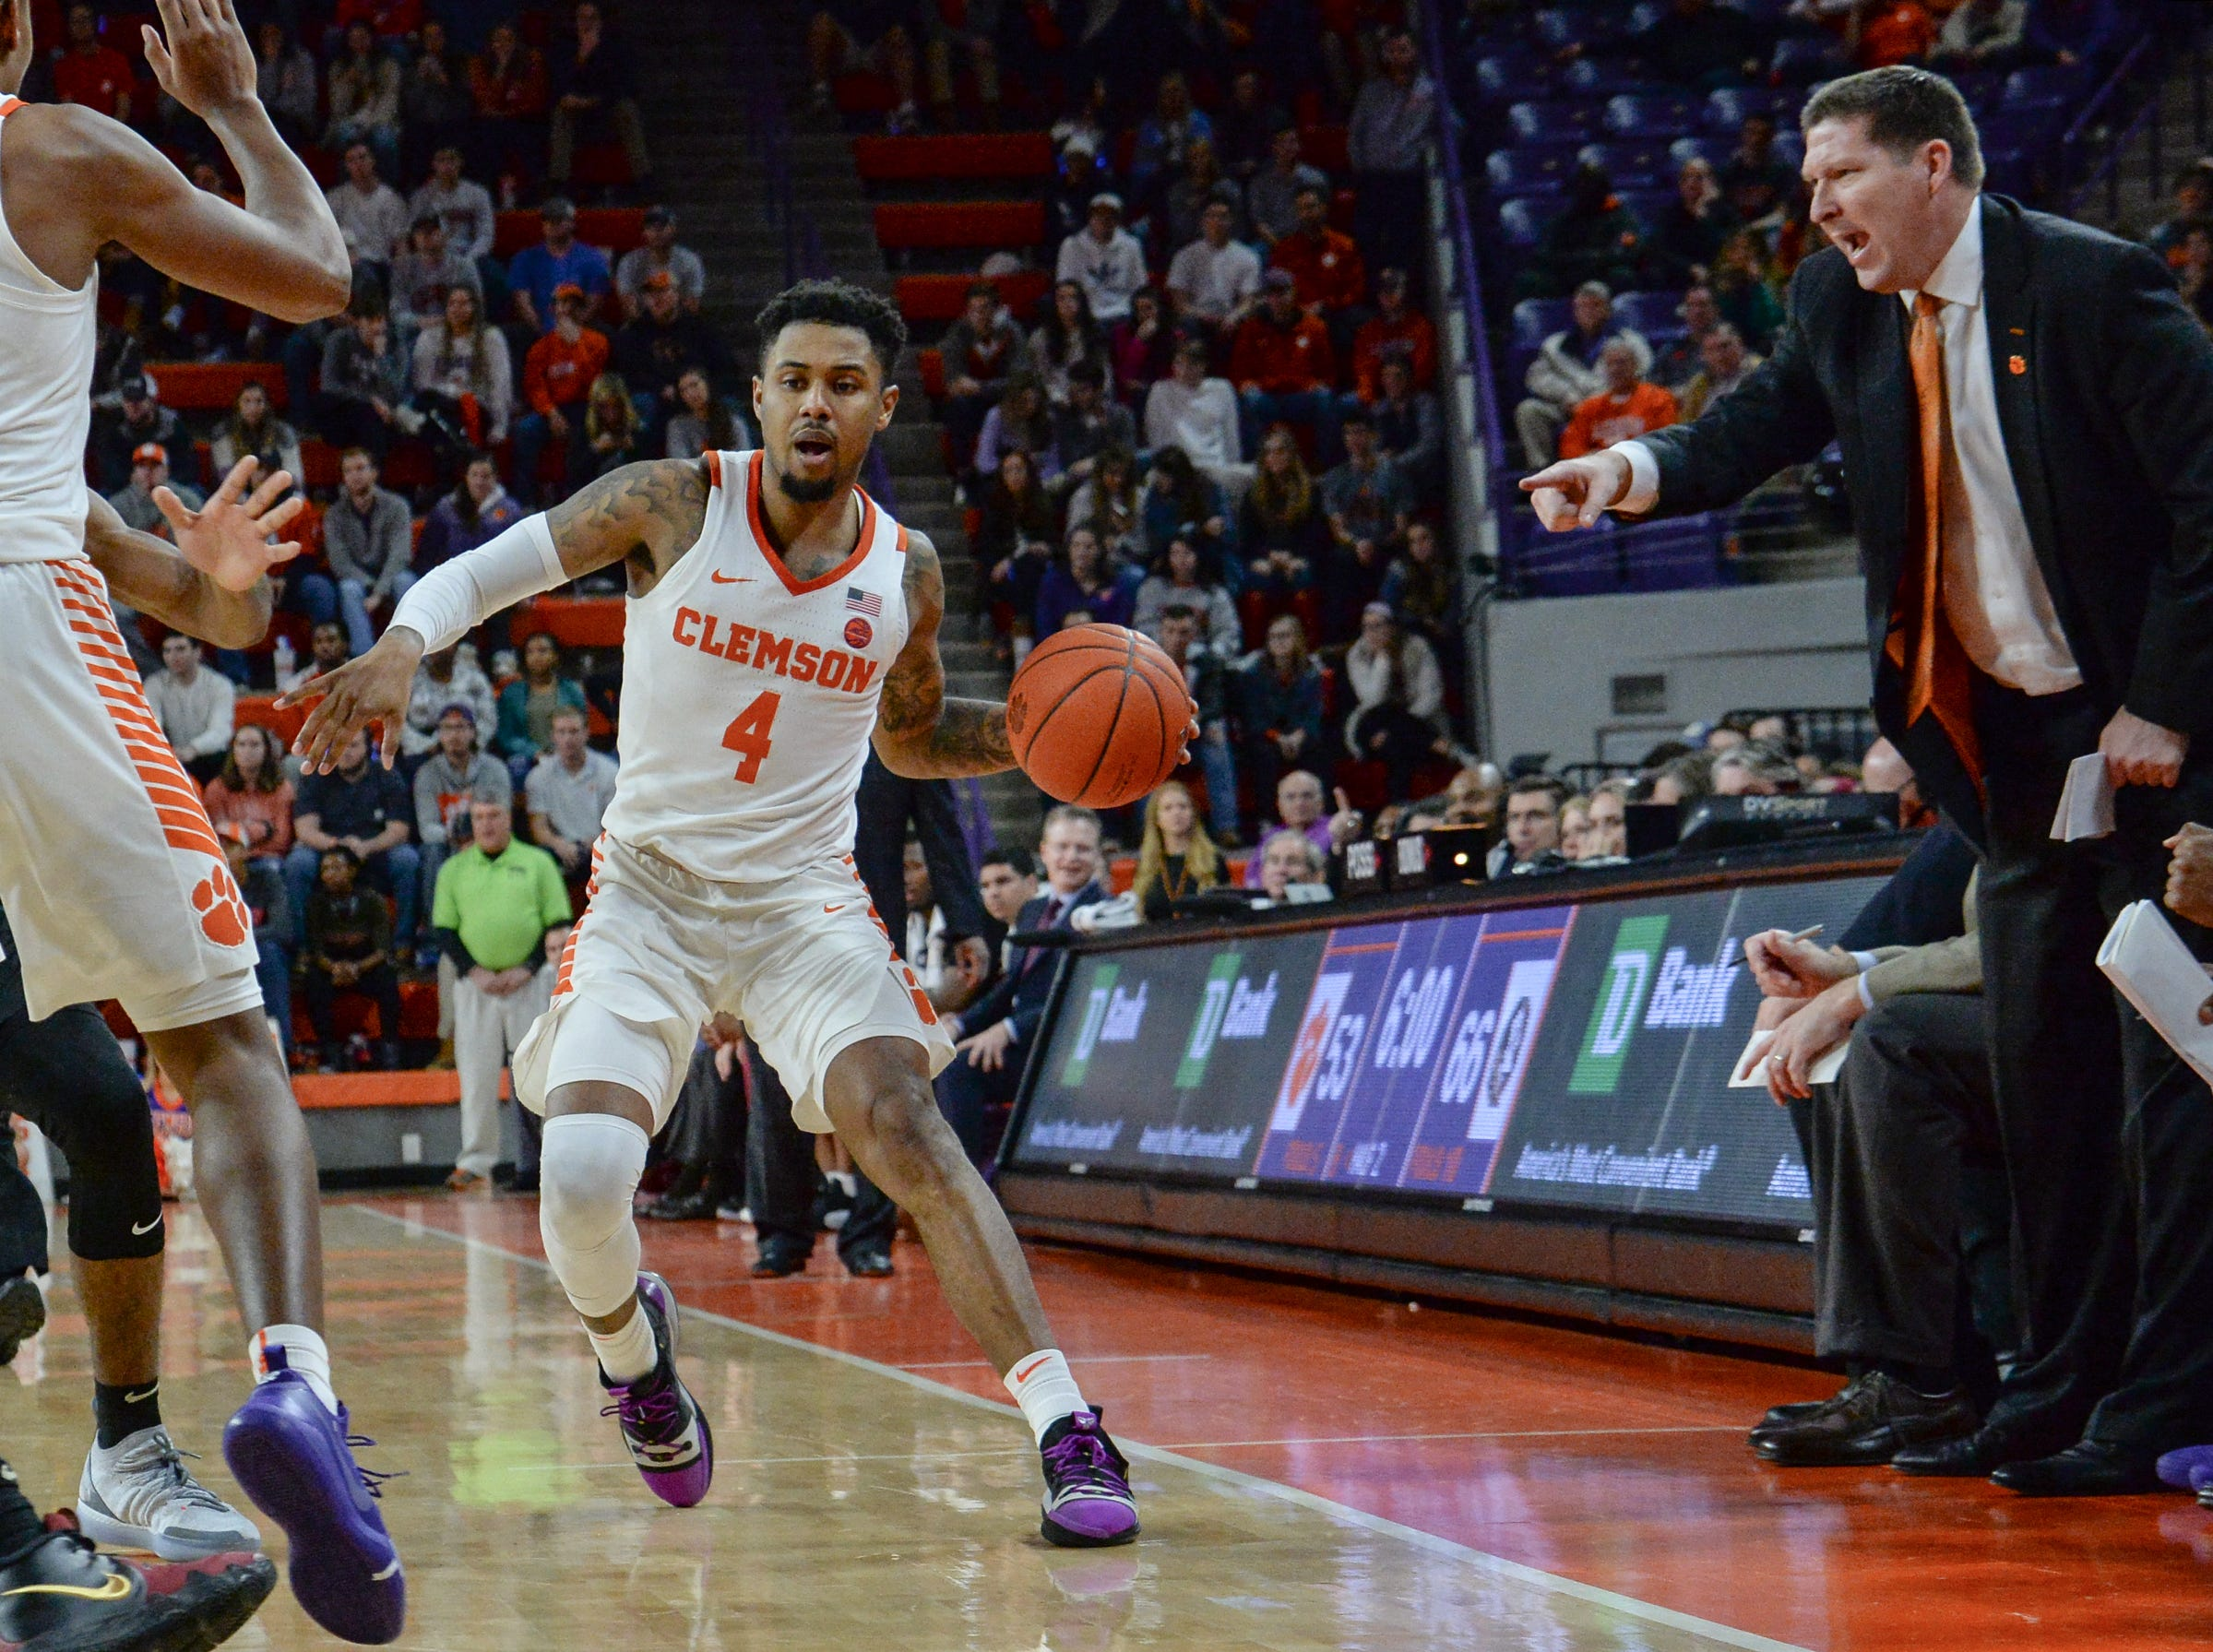 Clemson head coach Brad Brownell gives direction as Clemson guard Shelton Mitchell (4) dribbles playing Florida State during the second half at Littlejohn Coliseum in Clemson Tuesday, February 19, 2019.